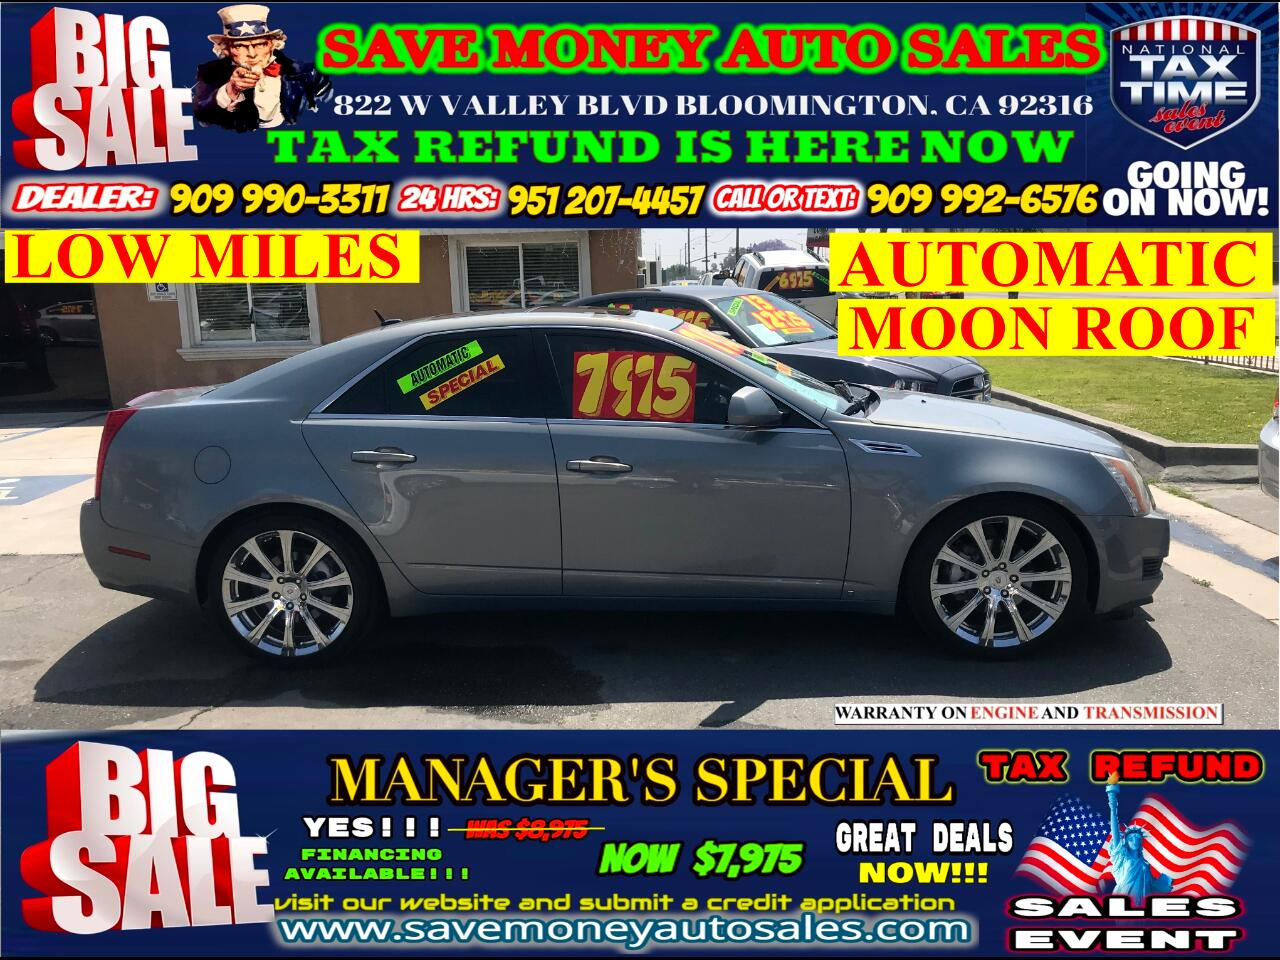 2008 Cadillac CTS 3.6L SFI>AUTOMATIC> LOW MILES> MOON ROOF